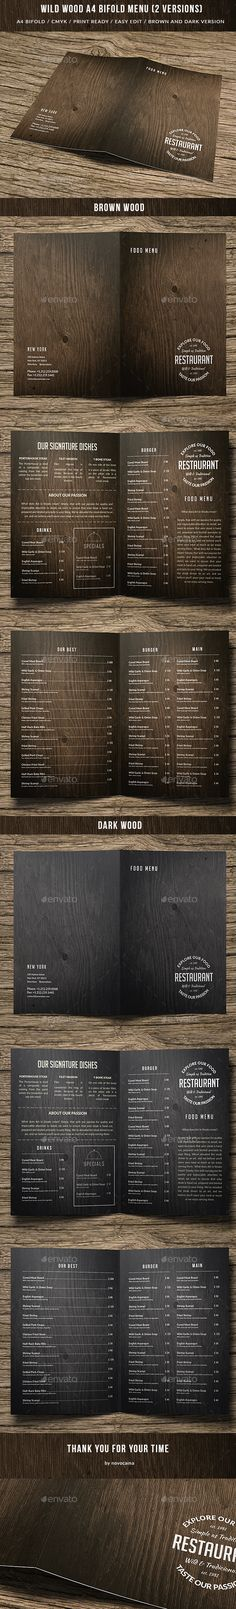 Wild Wood A4 Bifold Menu 2 Versions — Photoshop PSD #business #style • Available here → https://graphicriver.net/item/wild-wood-a4-bifold-menu-2-versions/15645295?ref=pxcr